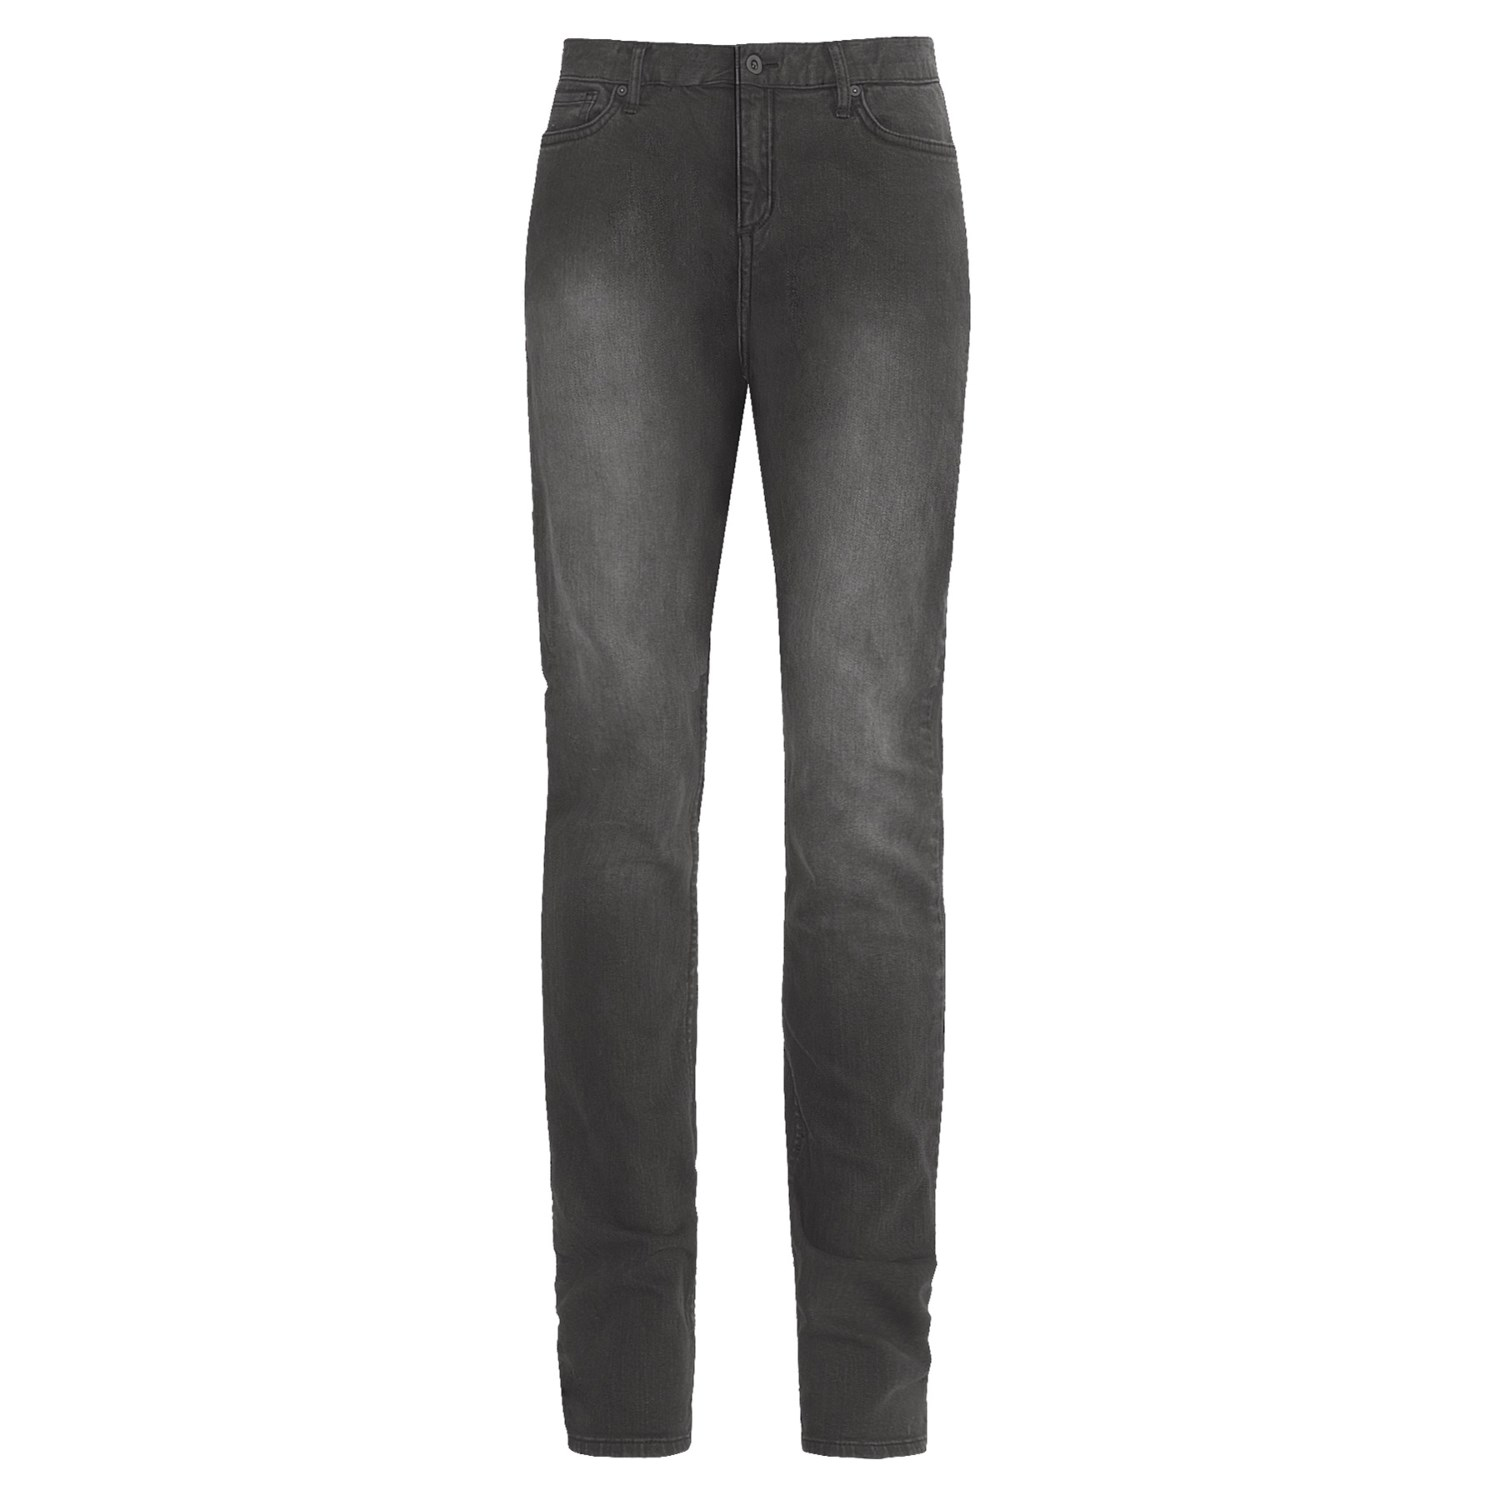 Dc Shoes Skinny Jeans Stretch Denim Low Rise For Women In Washed